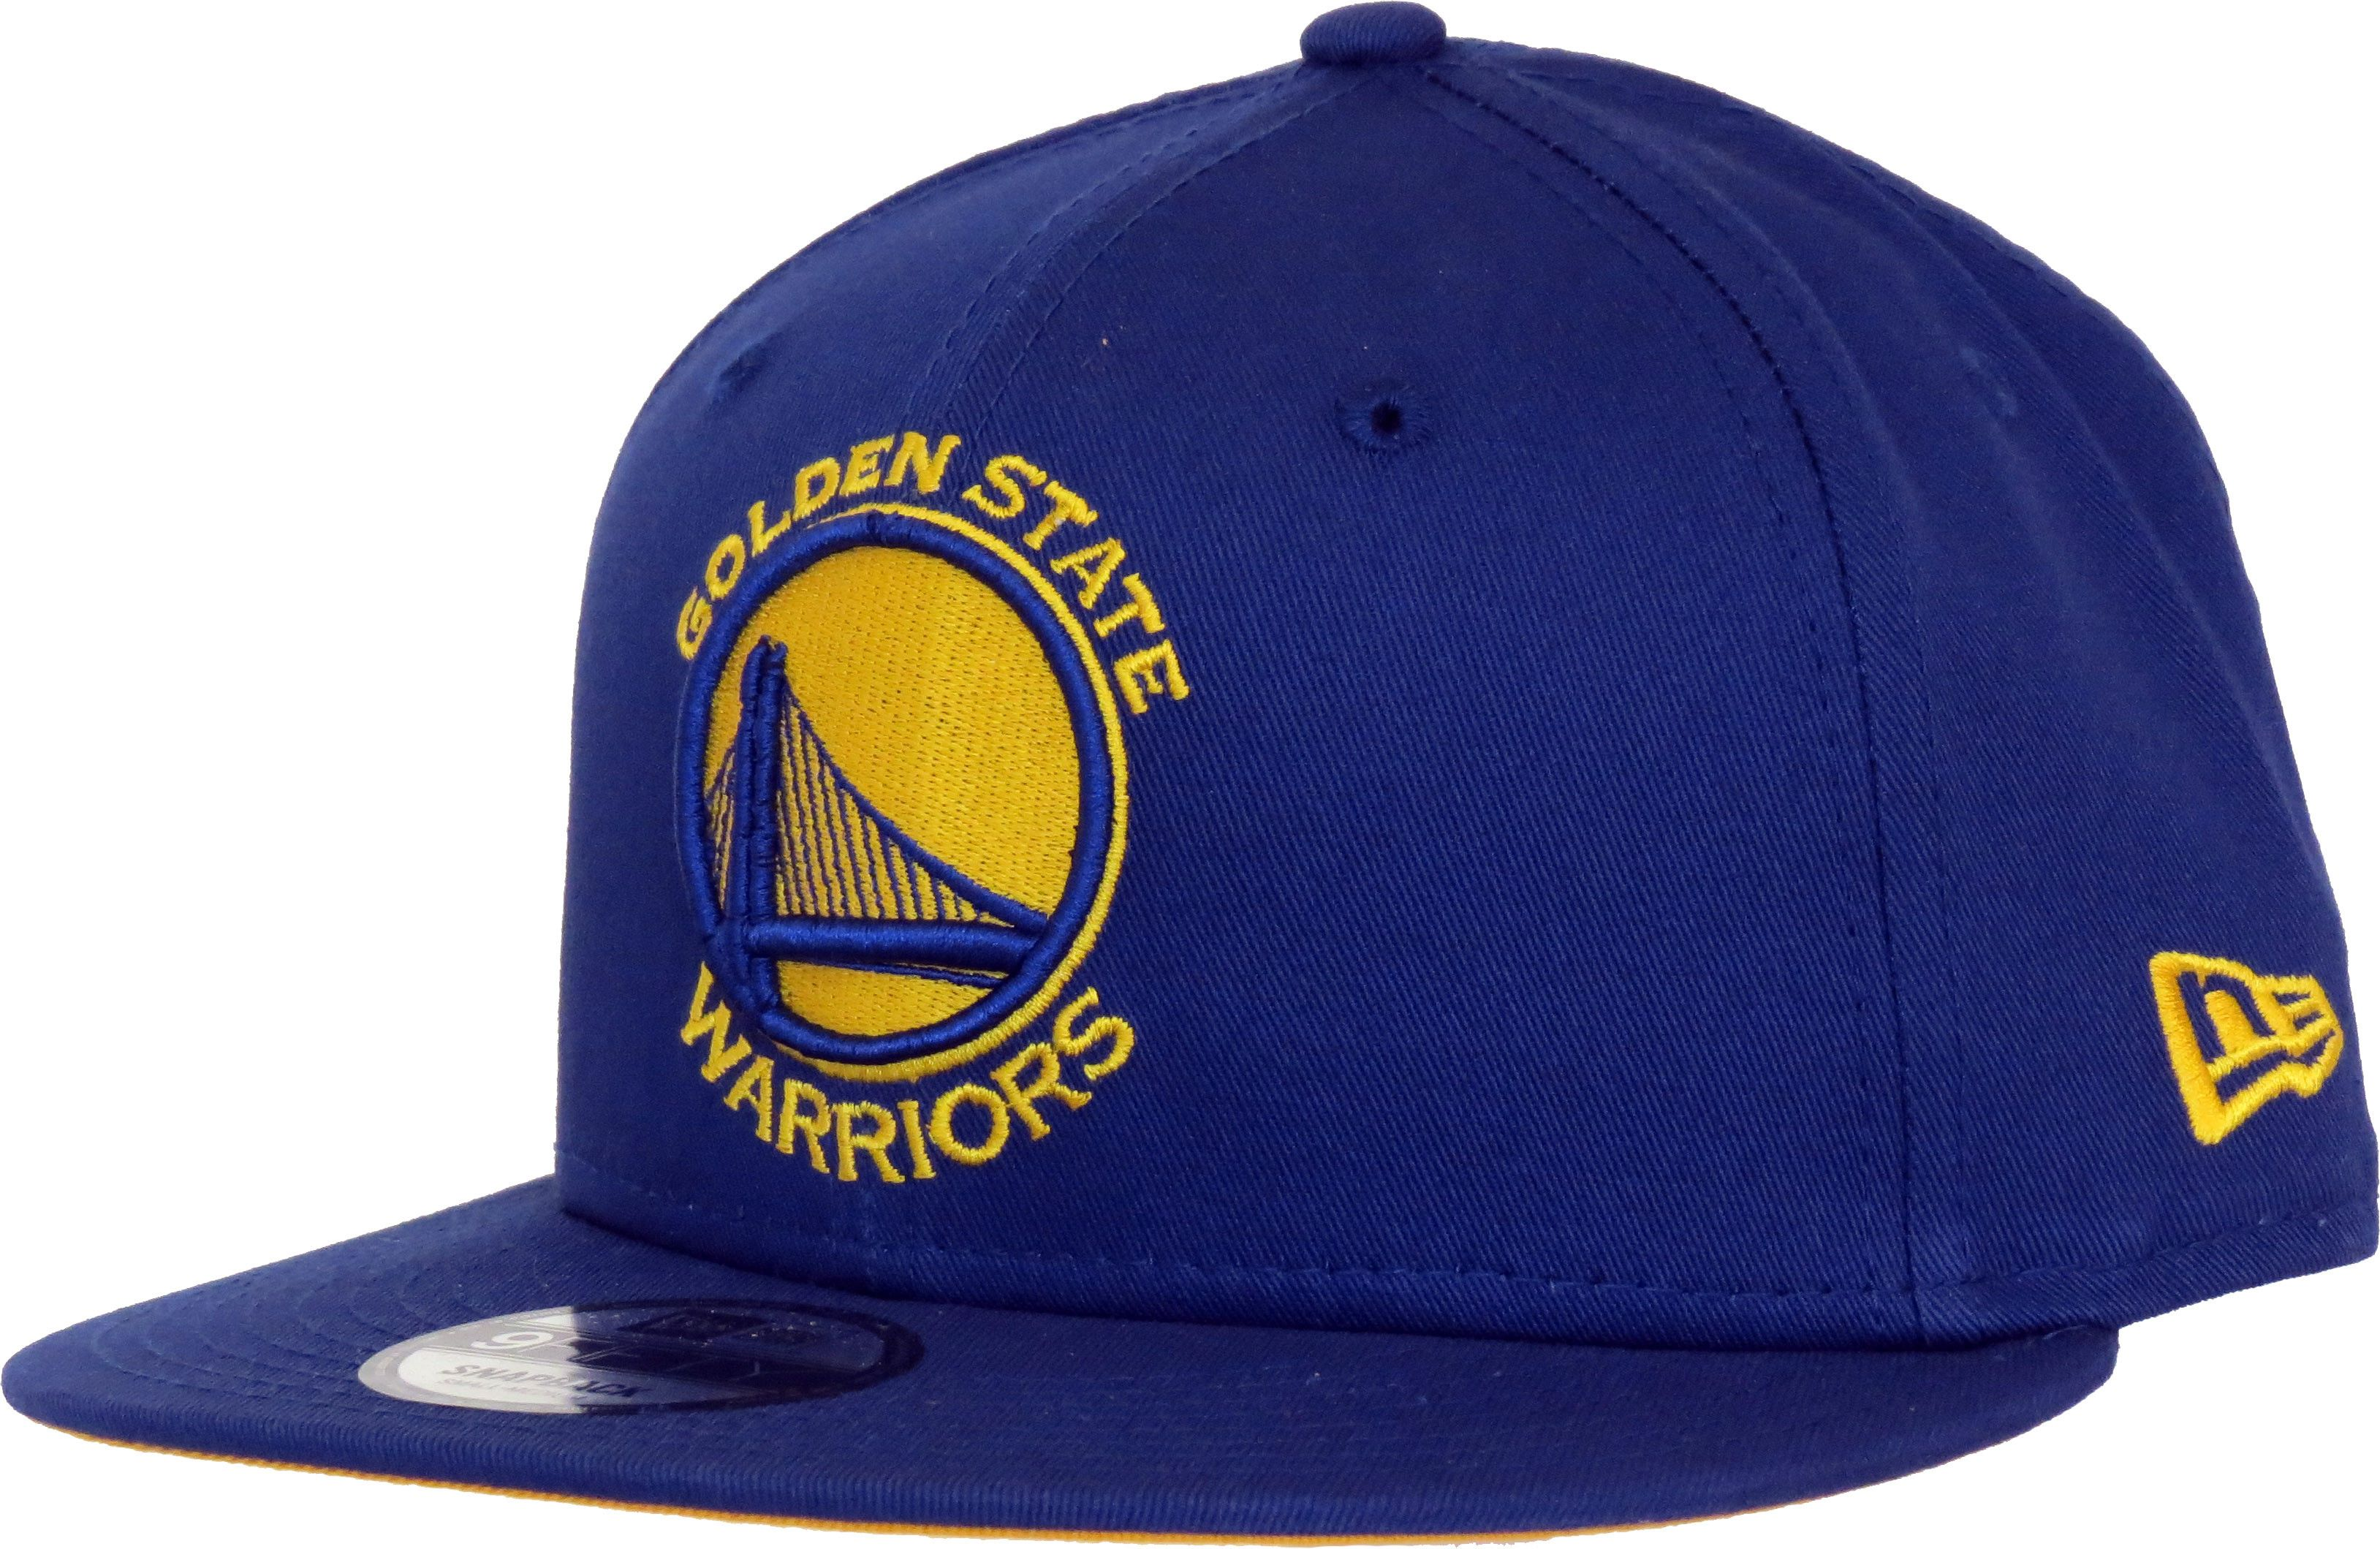 reputable site 7b70d 0496b New Era 950 NBA Team Classic snapback Cap. Blue with the Golden State  Warriors front logo, the New Era and NBA side logo, and the Yellow visor  underside.